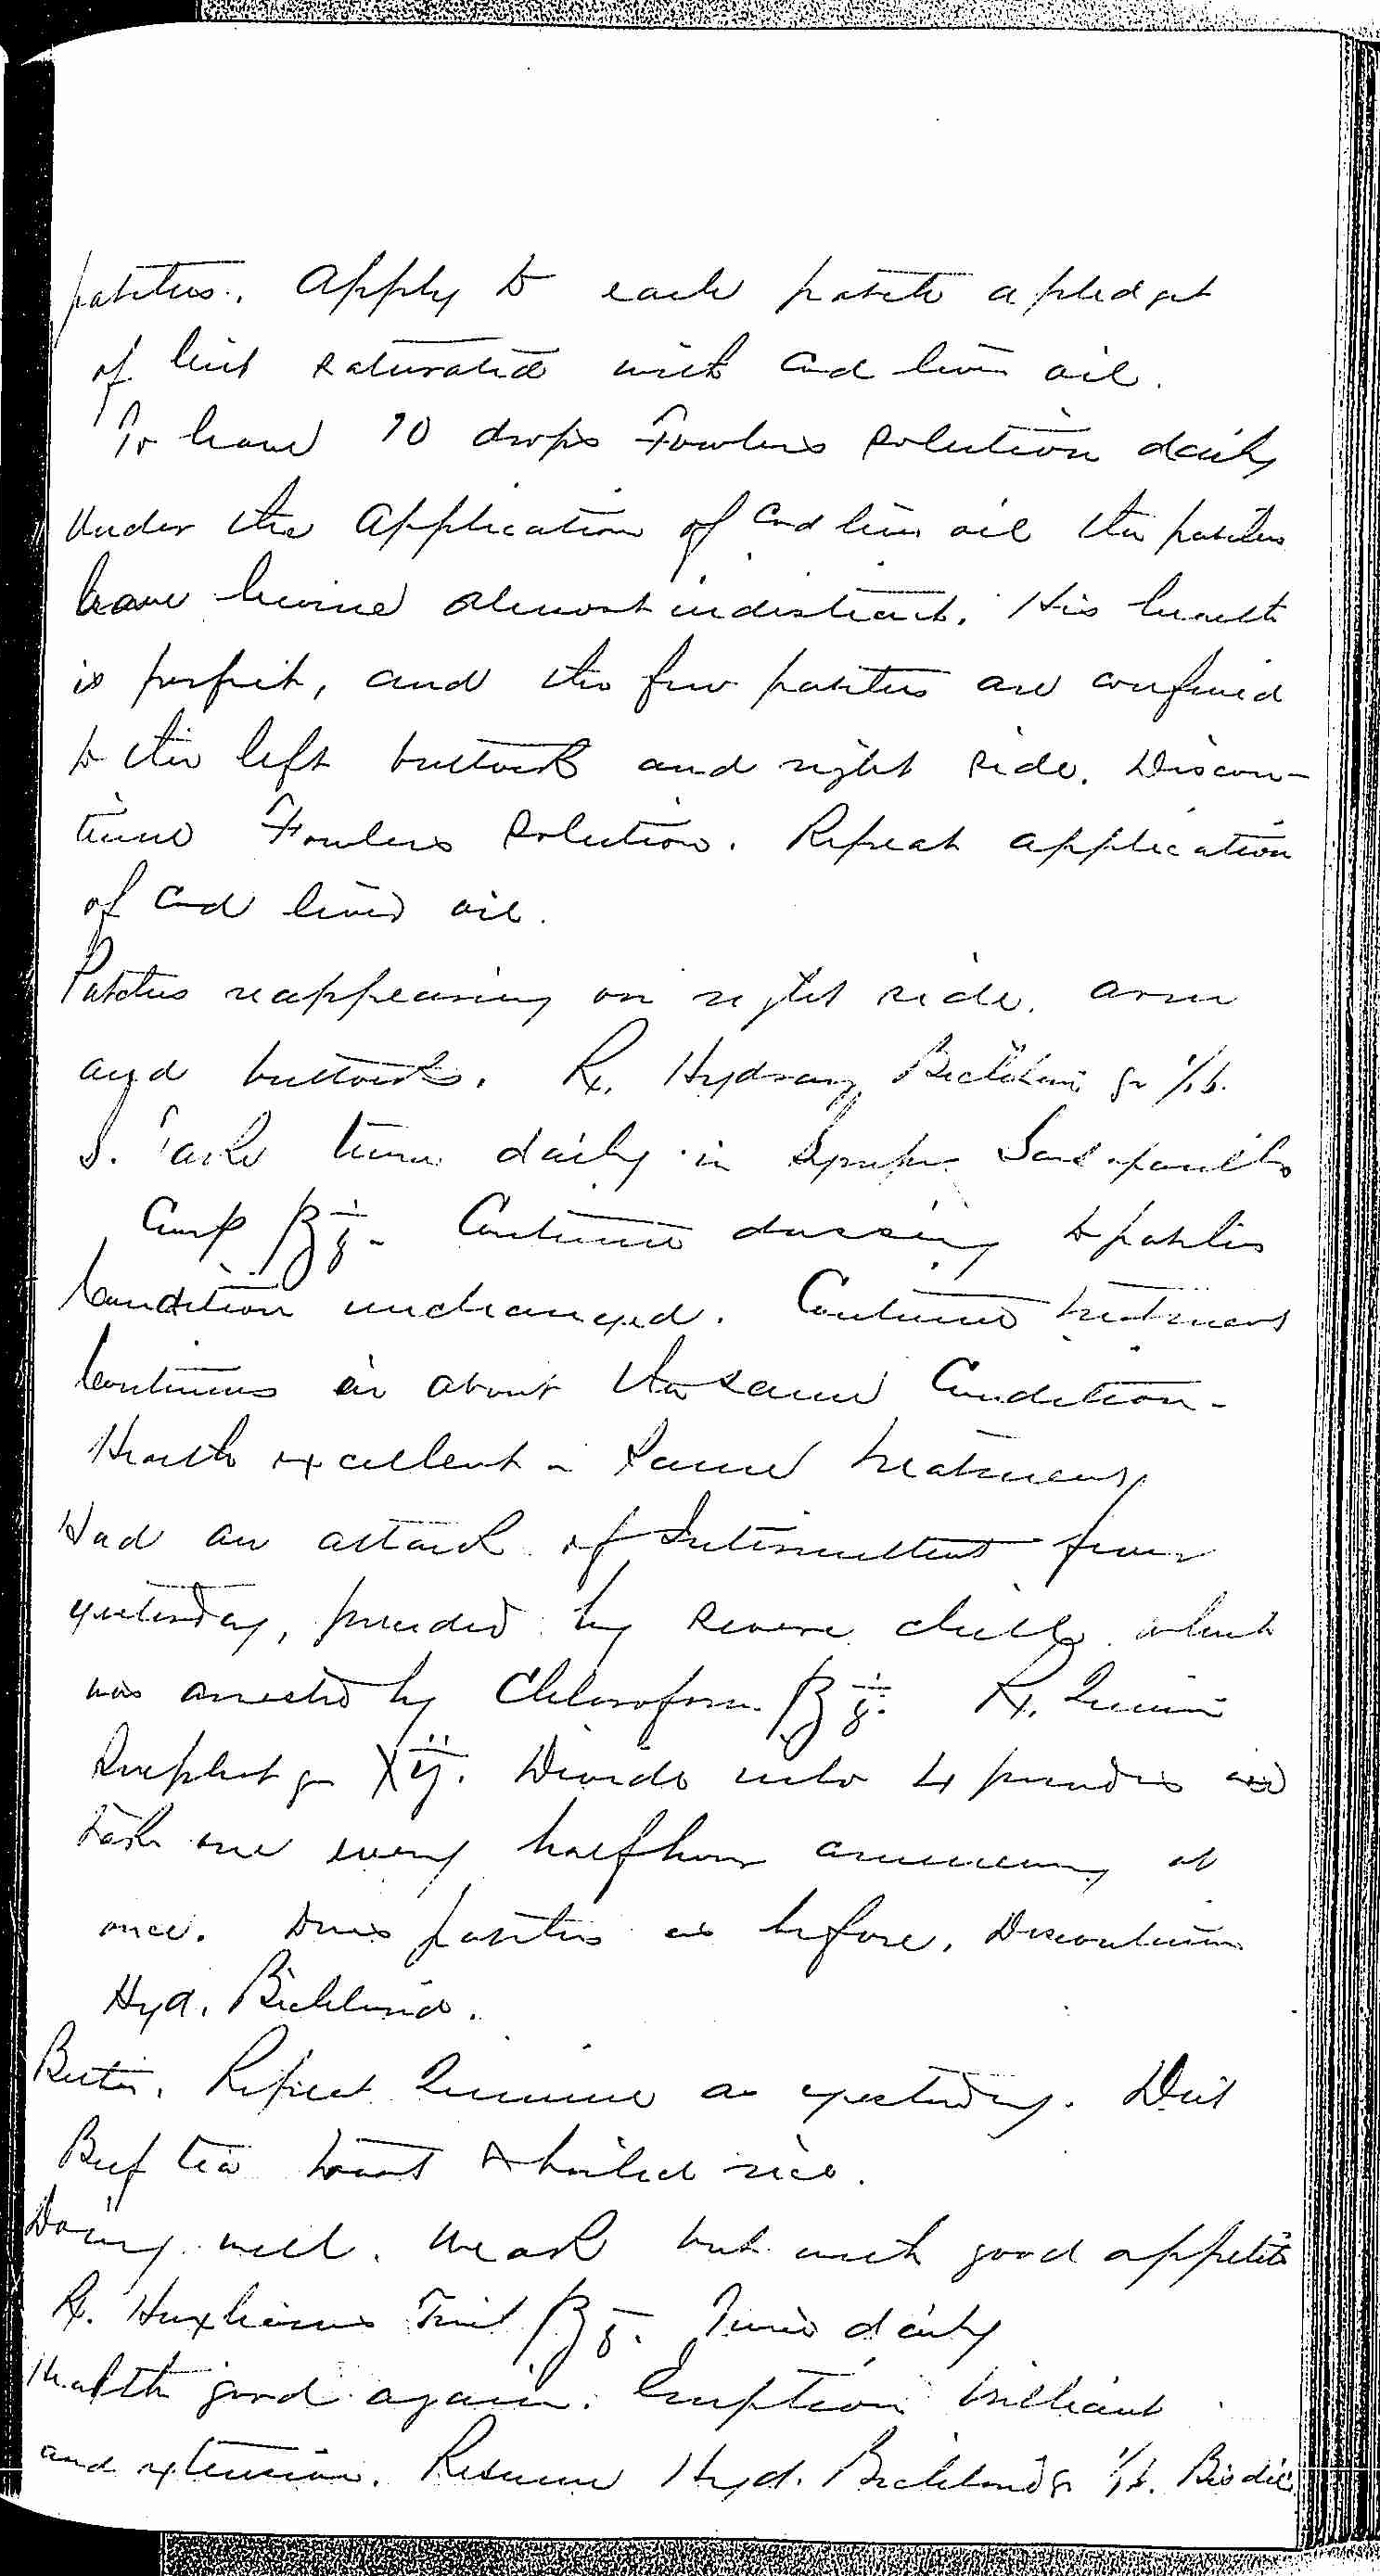 Entry for Edward Davis (page 3 of 6) in the log Hospital Tickets and Case Papers - Naval Hospital - Washington, D.C. - 1868-69